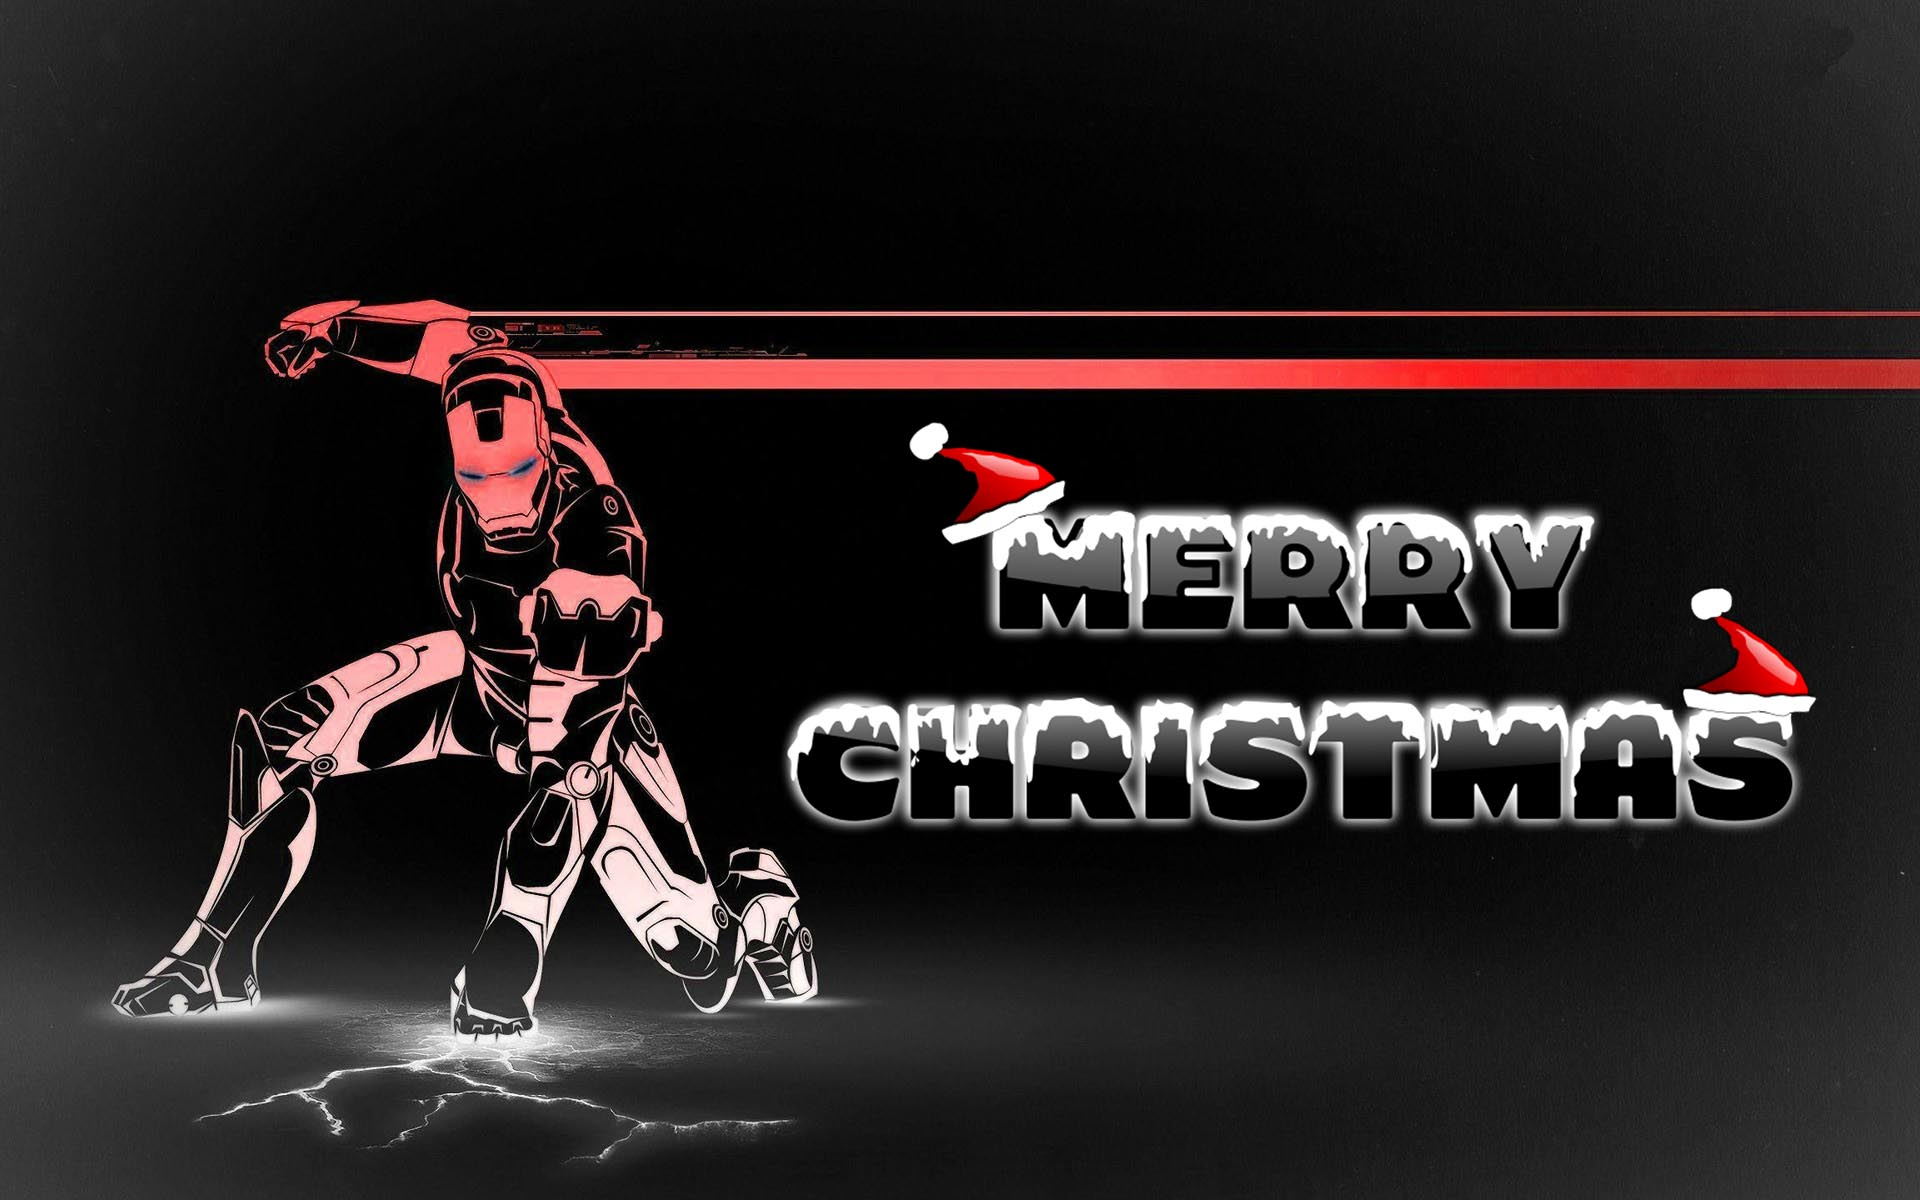 happy merry christmas wishes super hero ironman kids art hd wallpaper